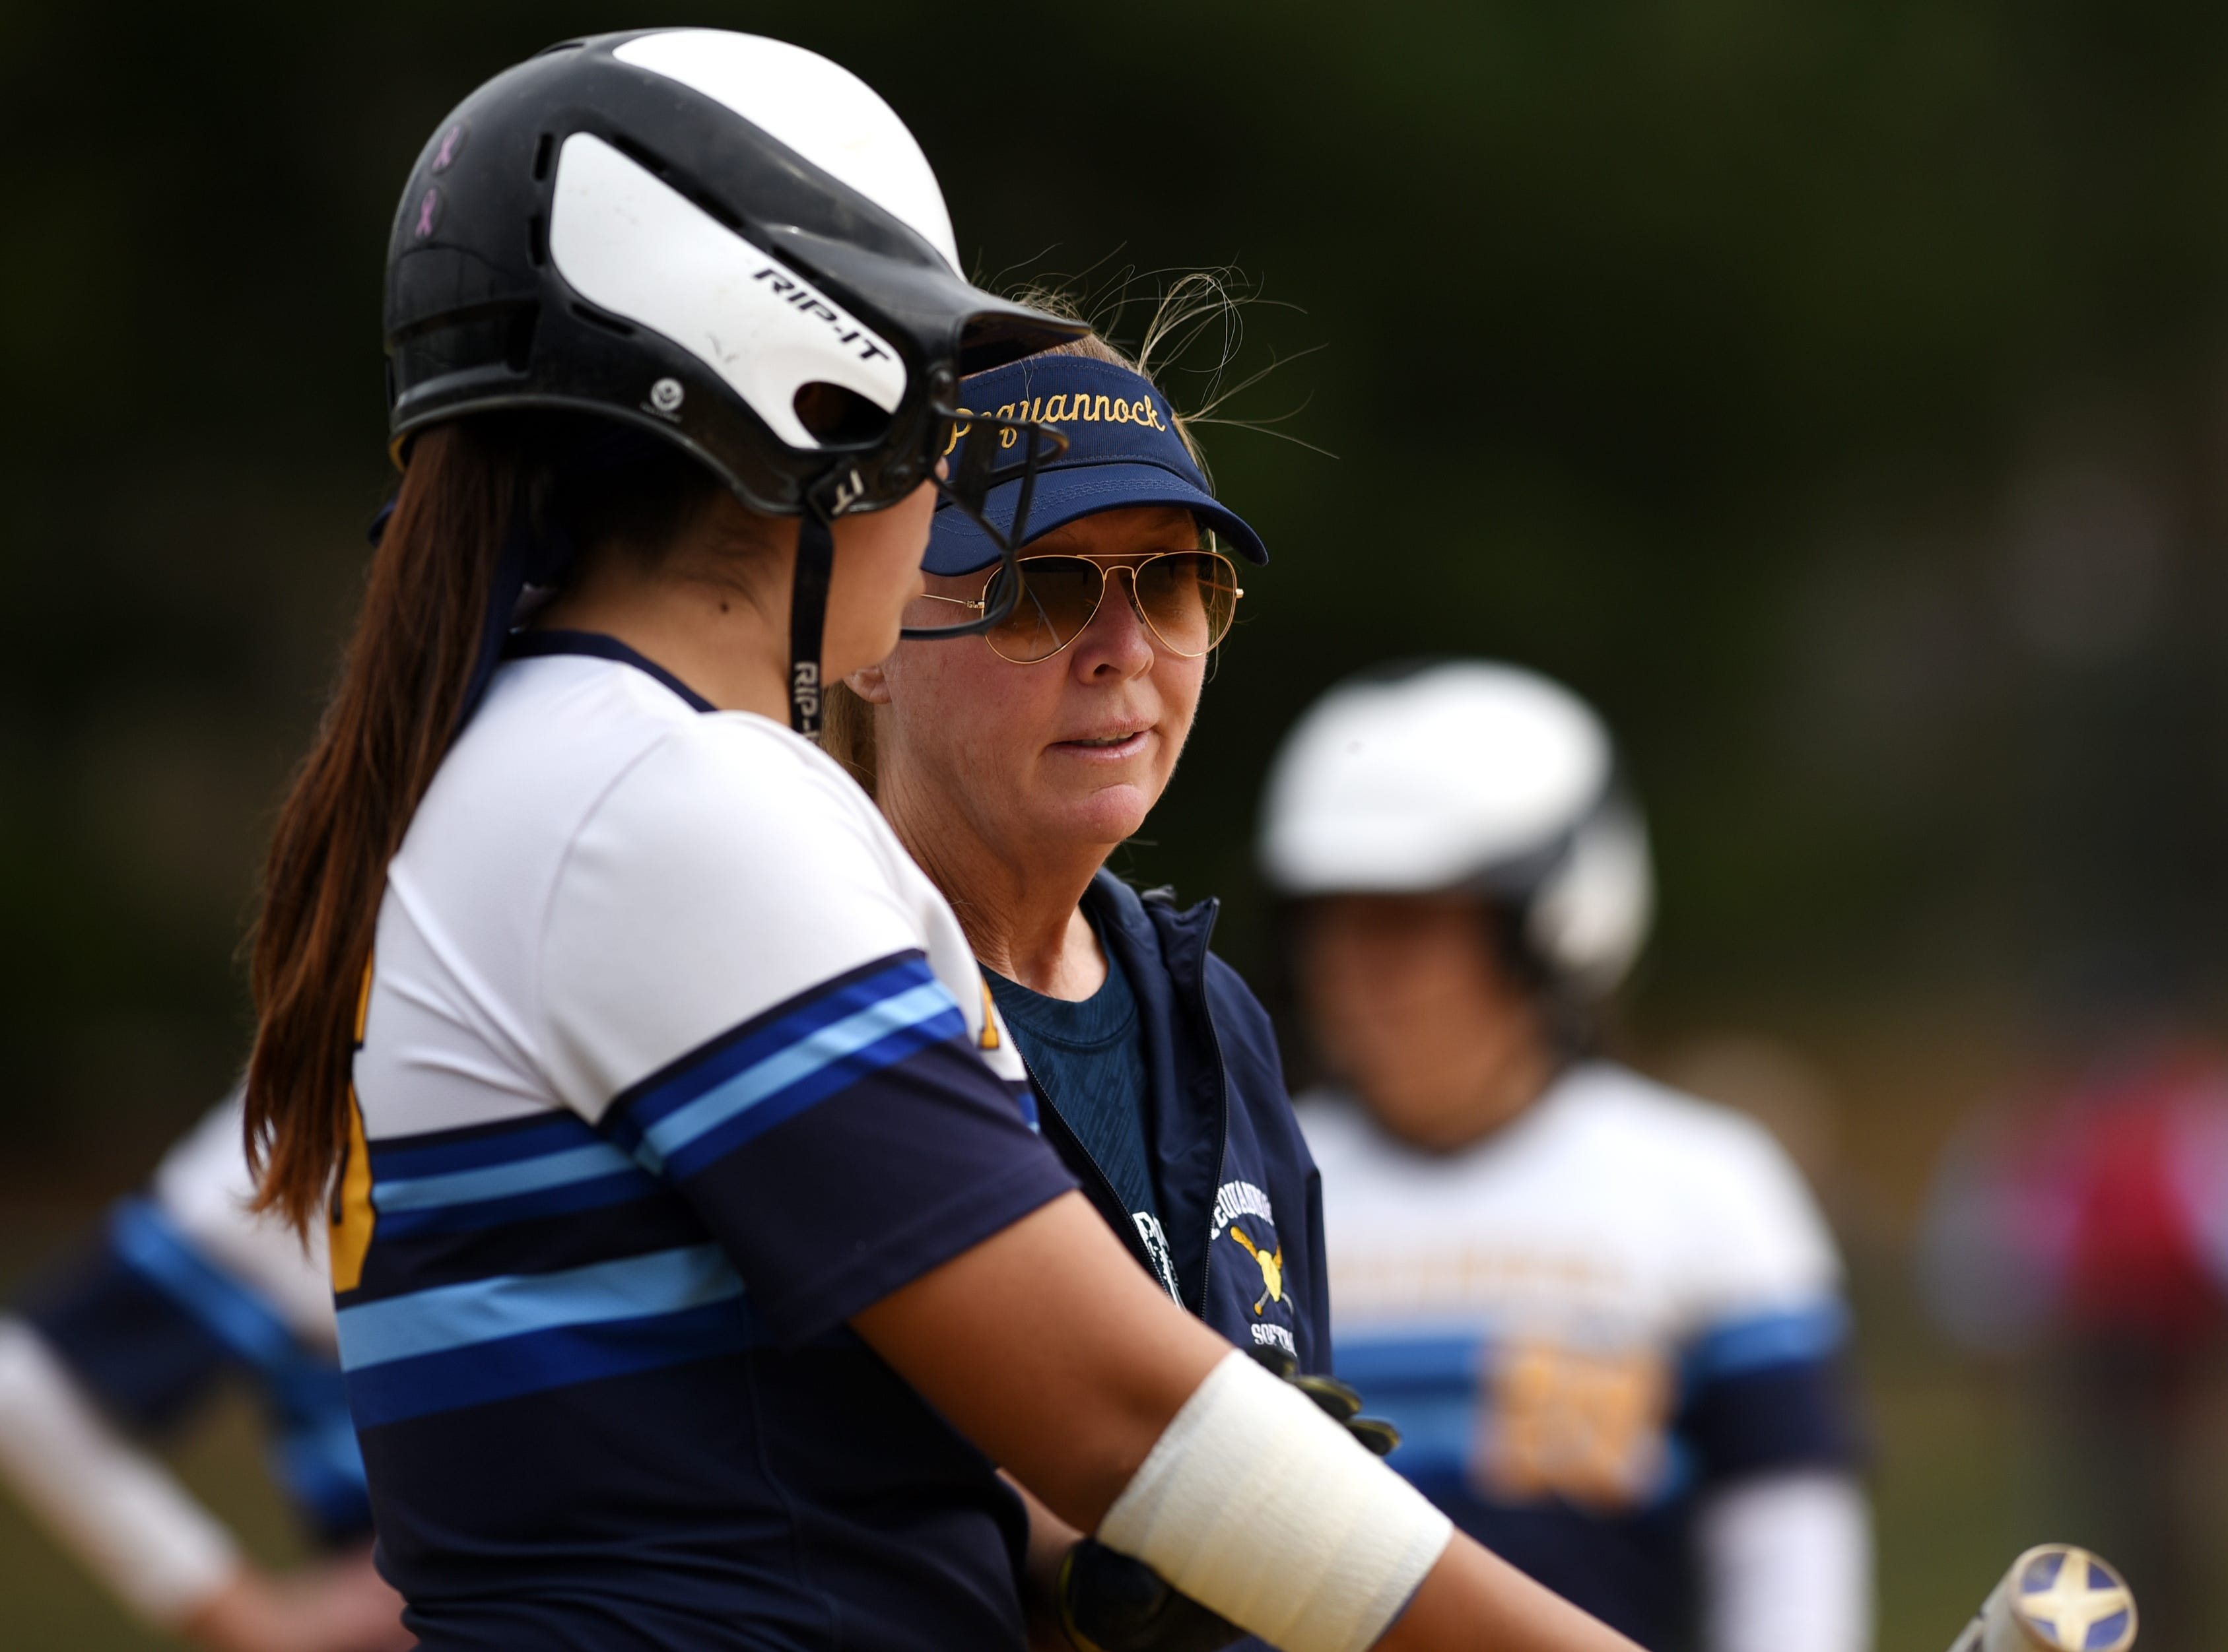 Pequannock at Kinnelon softball game in Kinnelon on Friday April 12, 2019. Pequannock coach Maryann Goodwin talks to the players during the game.